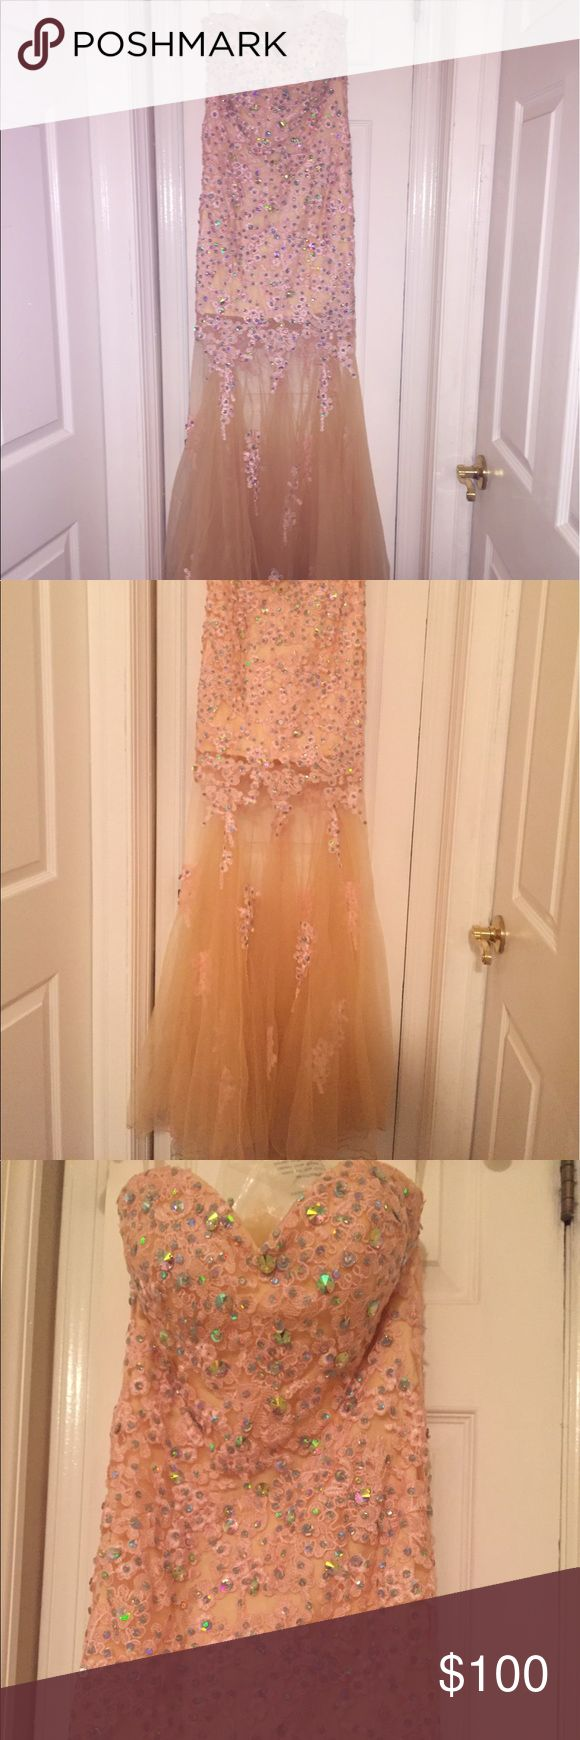 I am selling a prom dress! This prom dress is nude/ pink with gems and sequins throughout the design of the dress. The top half of the dress is embroidered and the bottom half of the dress is tulle with some embroidered designs going down it. This dress is strapless and also comes with excess matching tulle. WORN ONCE. Slight dirt color on bottom edges of tulle from being worn. panoply  Dresses Prom